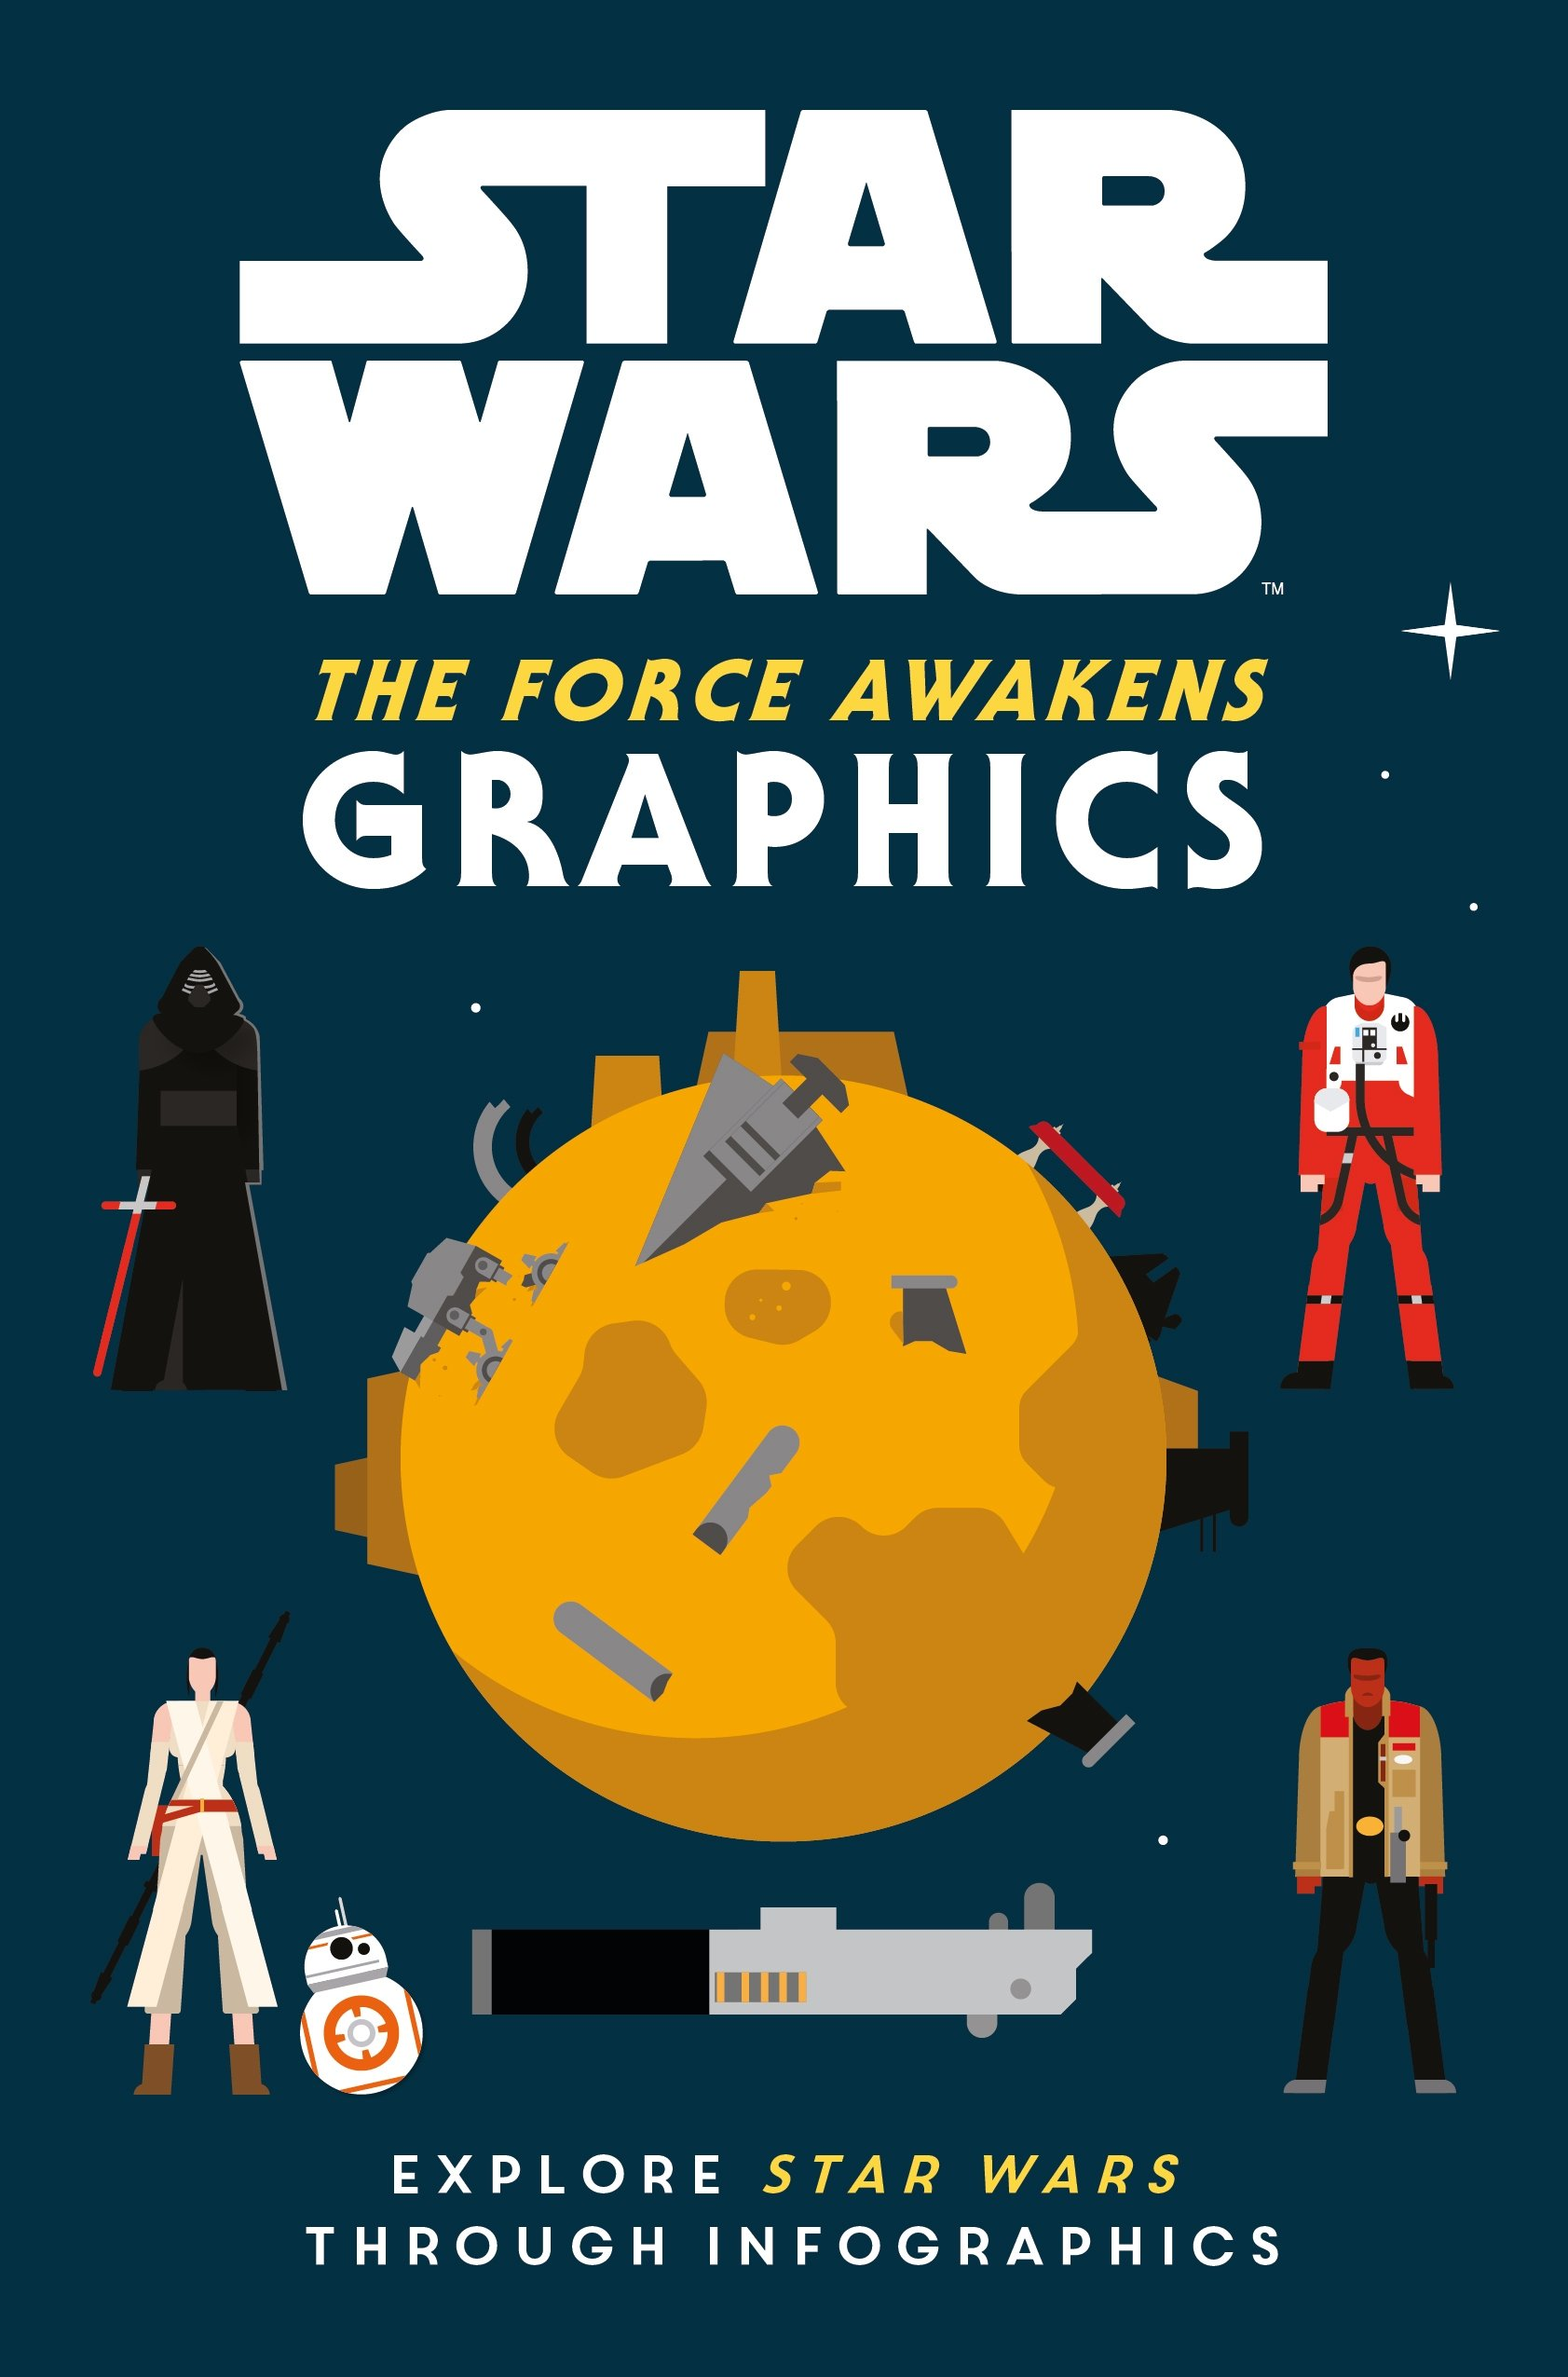 Star Wars: The Force Awakens Graphics